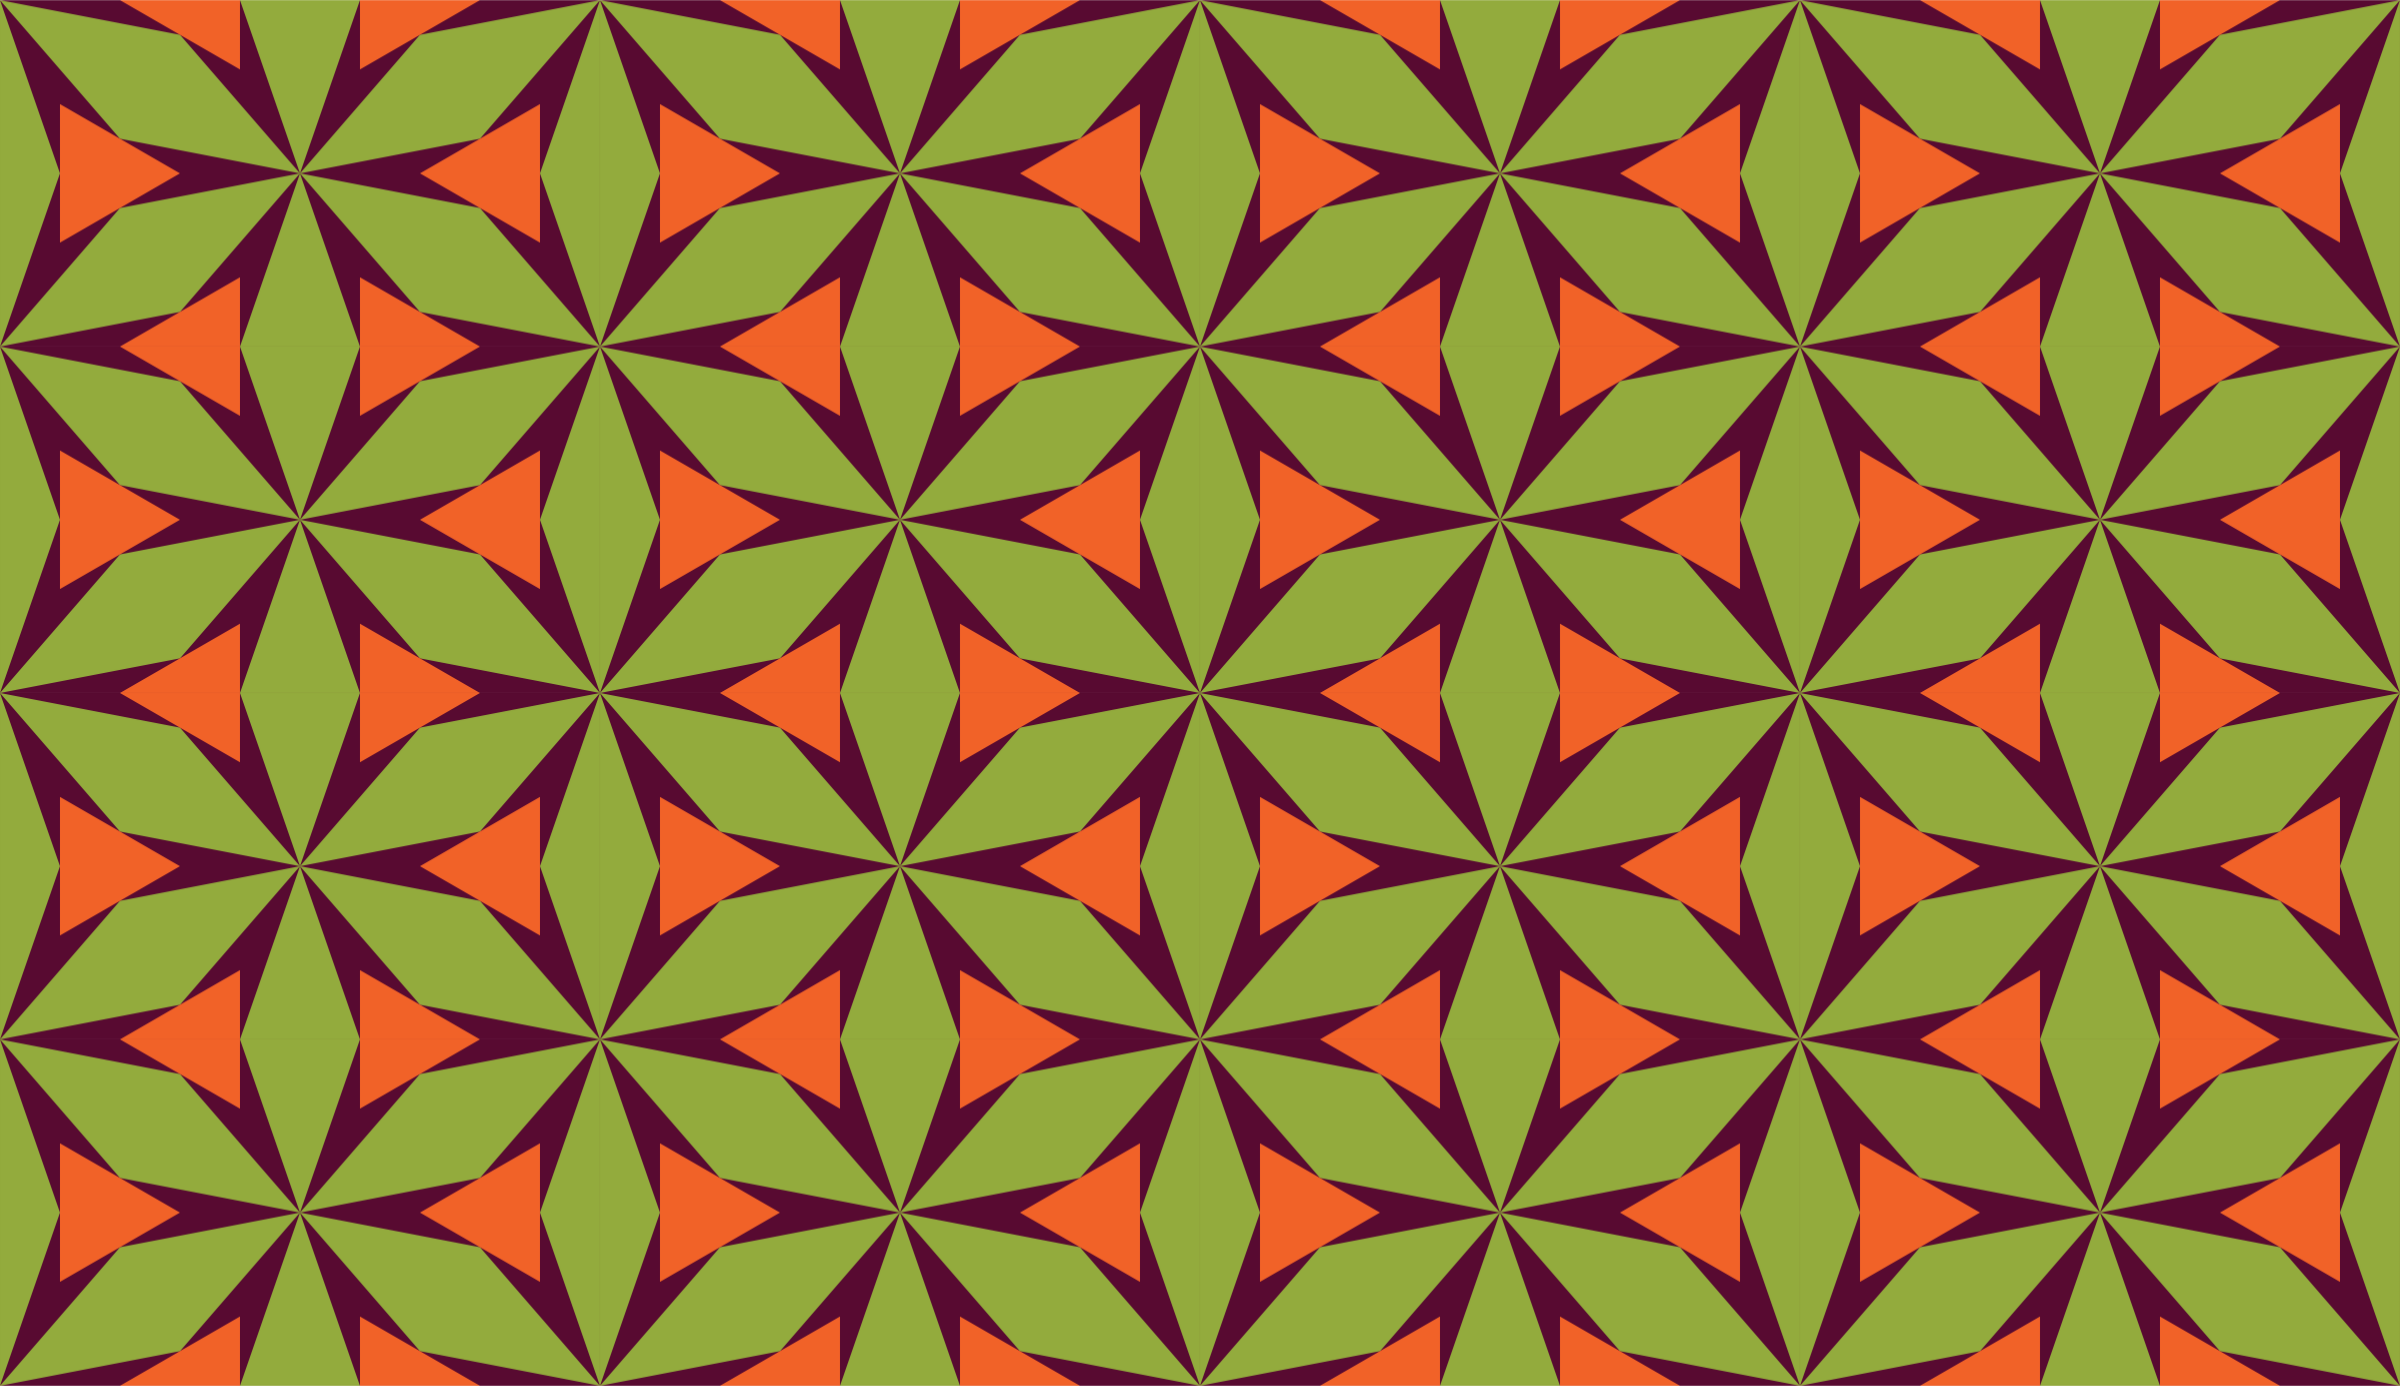 Tessellation 15 (colour 4) by Firkin